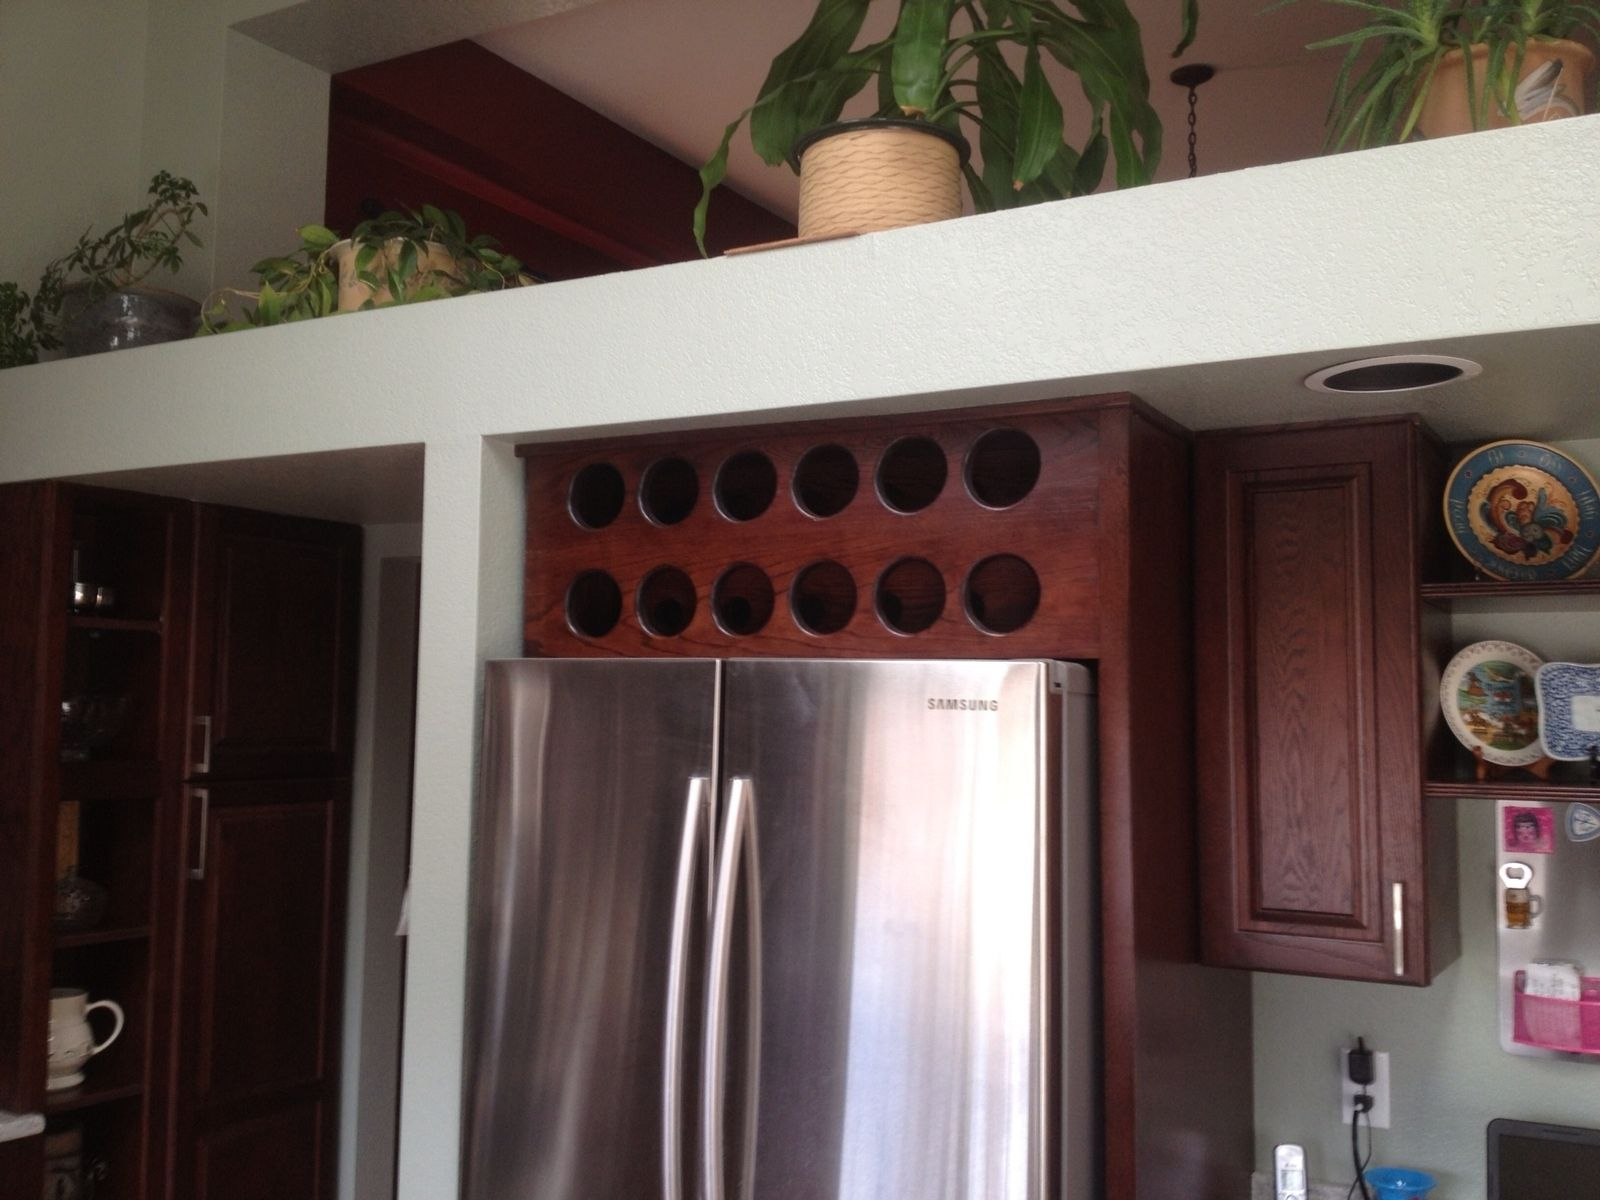 Wine Refrigerator Reviews >> Handmade Open Wine Cabinet Above Refrigerator by Beack Construction | CustomMade.com